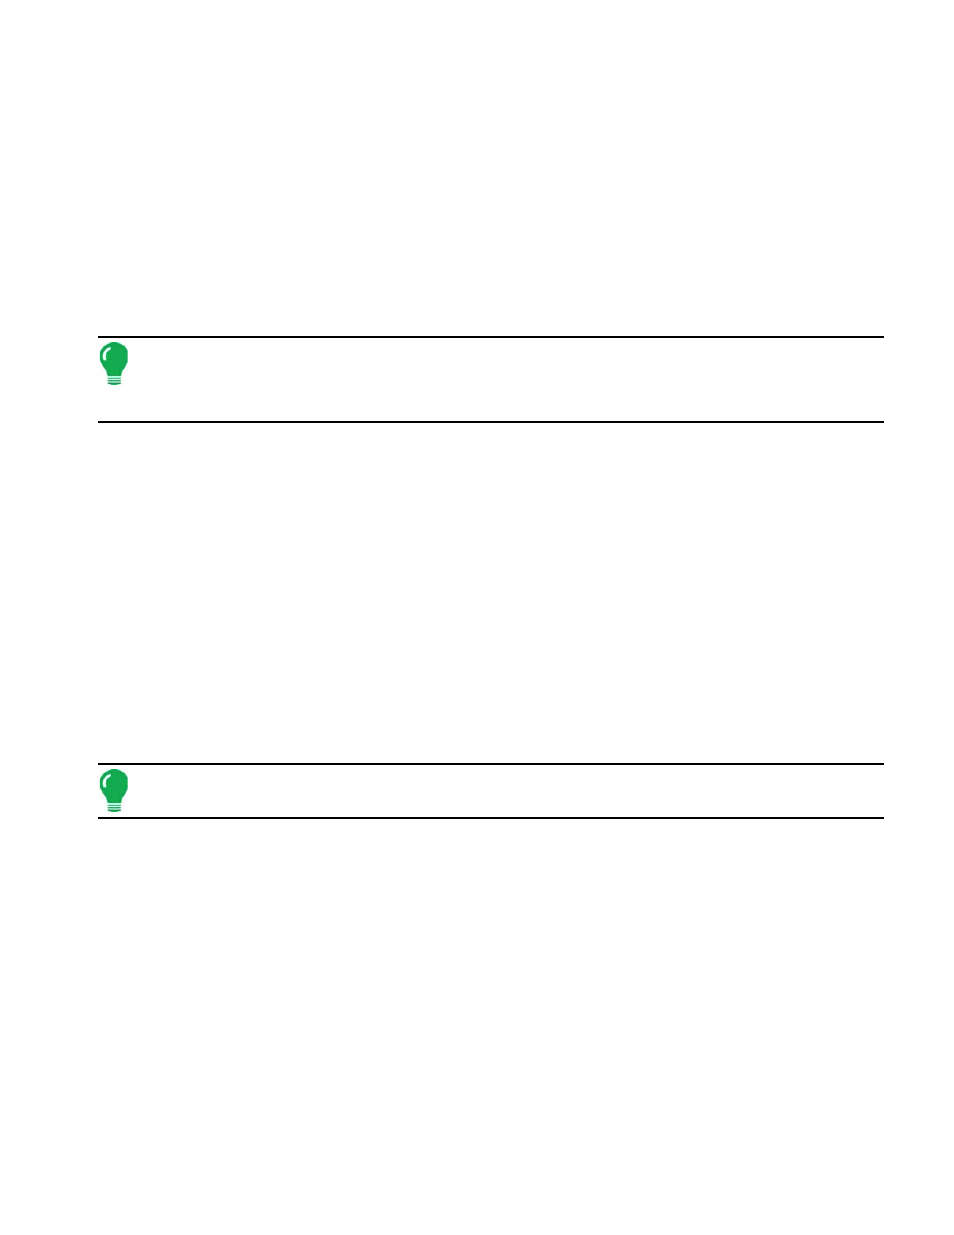 Appendix, System diagrams reference, Current file formats | Agsetup,  Agdata, Agsetup files